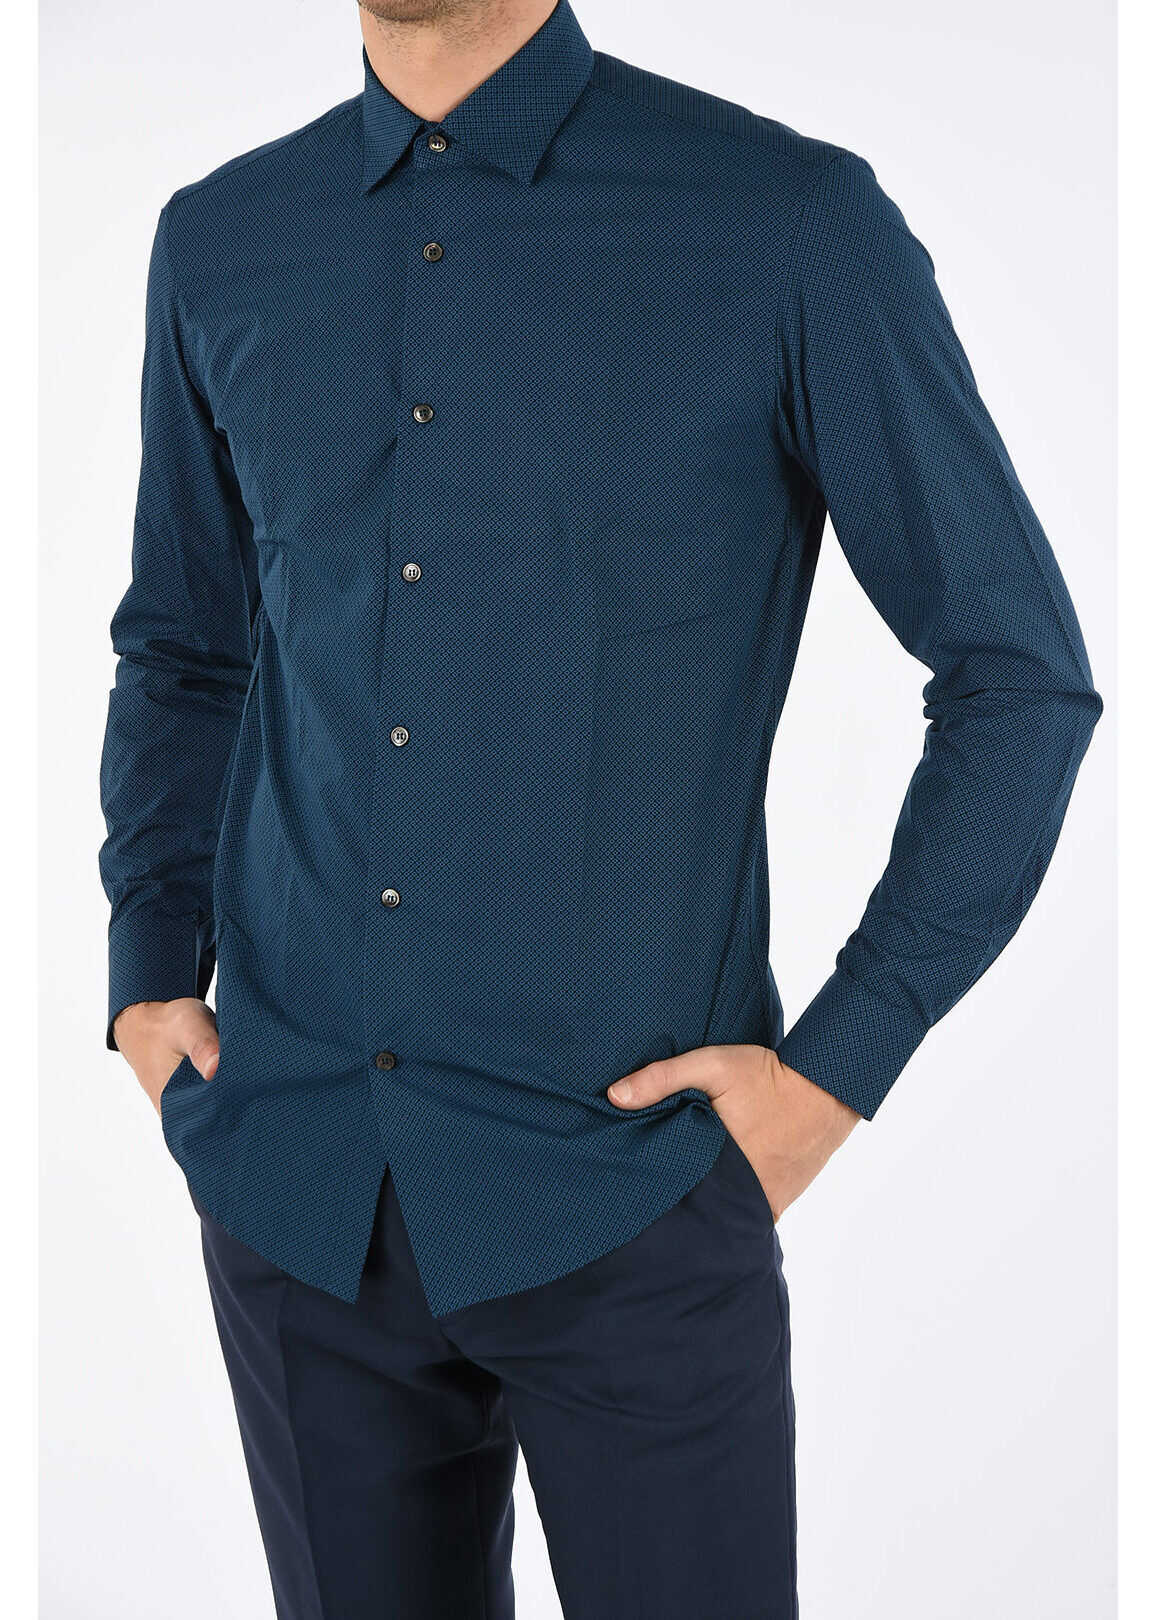 Salvatore Ferragamo bird's eye spread collar shirt BLUE